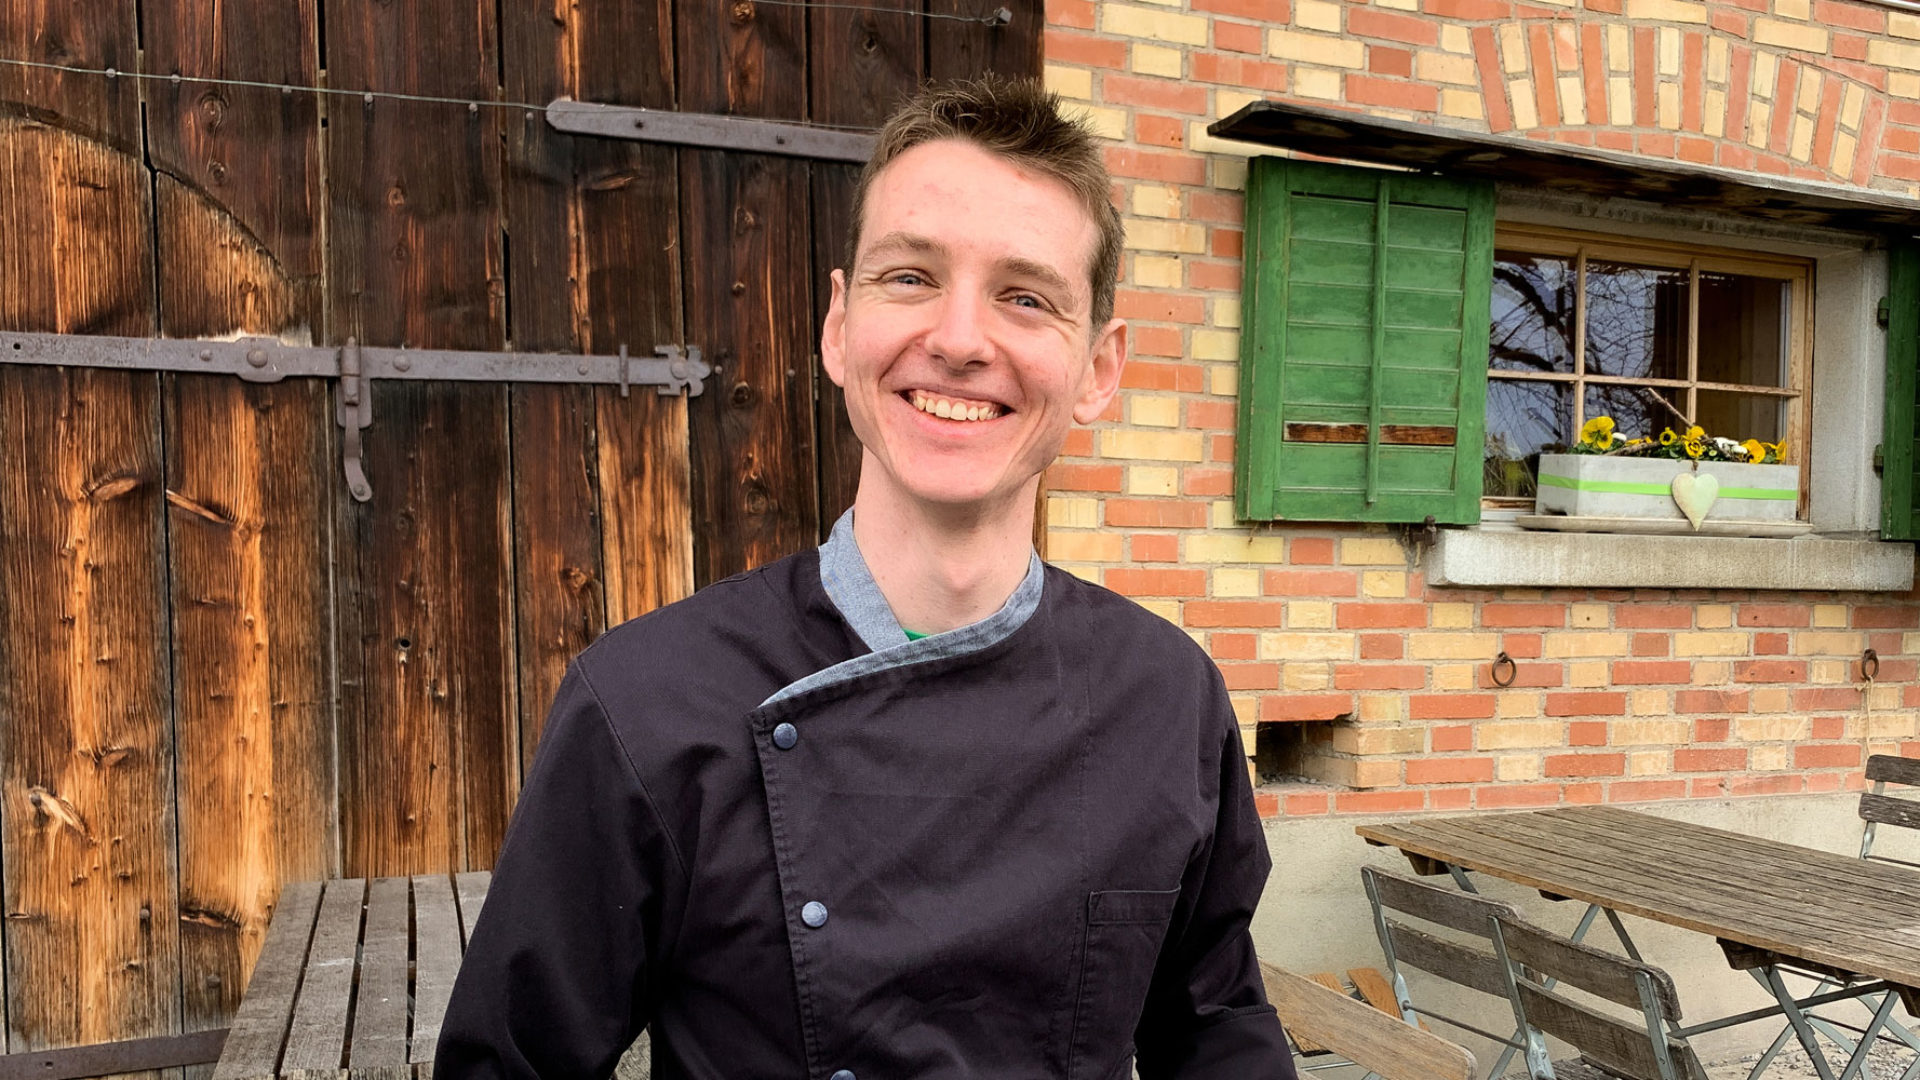 Junior-Sous-Chef Kilian Imboden